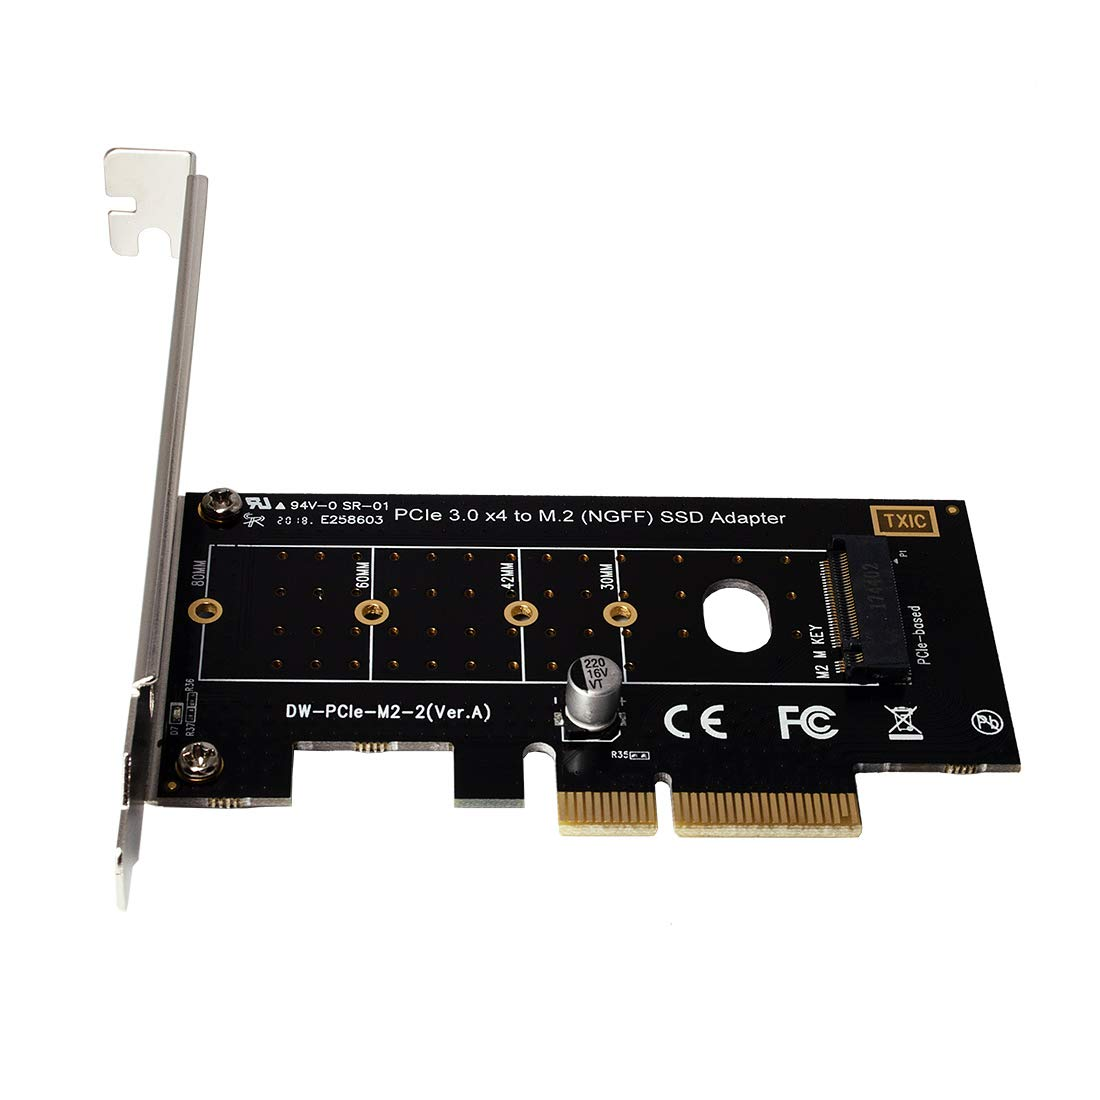 xqjtech PCI-E PCI Express 3.0 X4 to NVME M.2 NVME to NVME SSD PCI-e 3.0 x 4 Host Controller Expansion Card Support M Key SSD Type 2280 2260 2242 2230 Adapter Converter by xqjtech (Image #1)